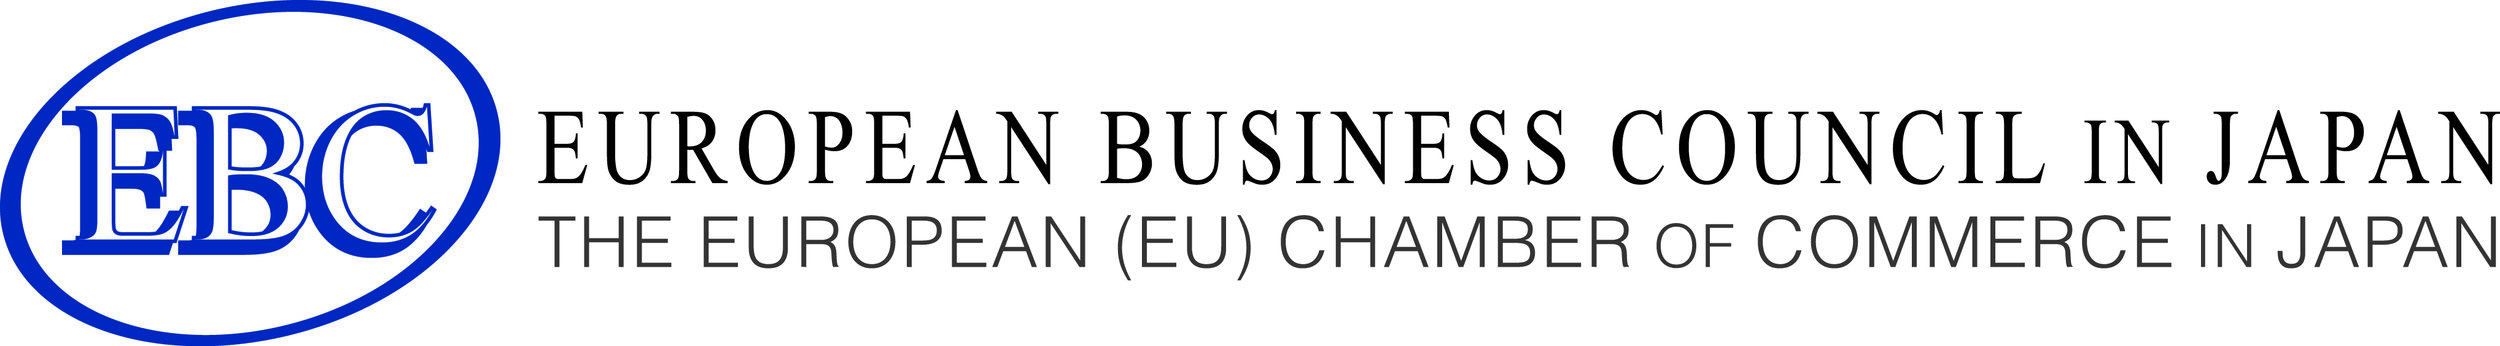 EU-Japan-EPA-Forum-European-Business-Council-In-Japan-Nordstrom-International